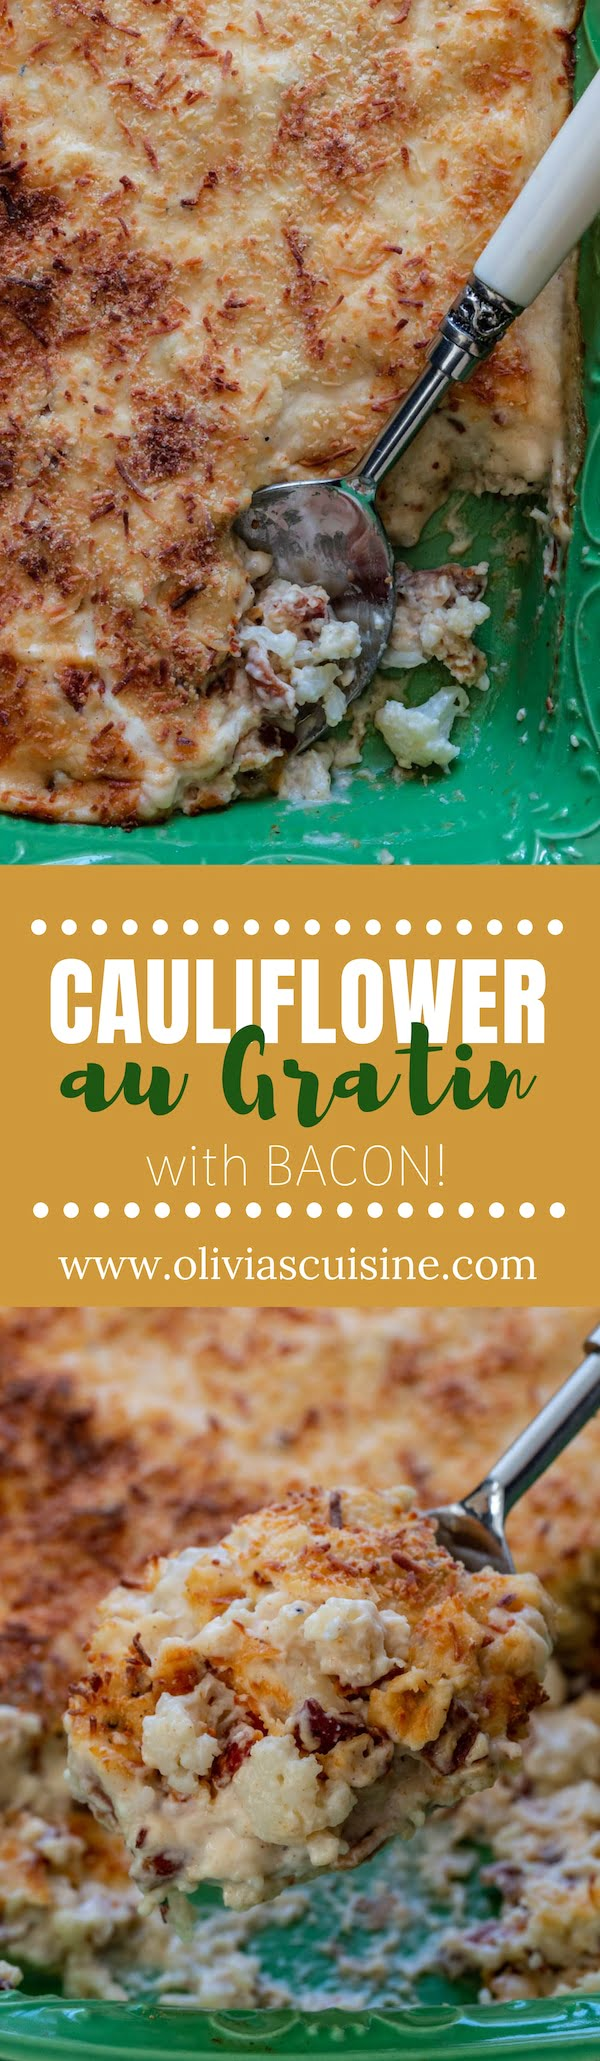 A collage of Cauliflower Gratin photos